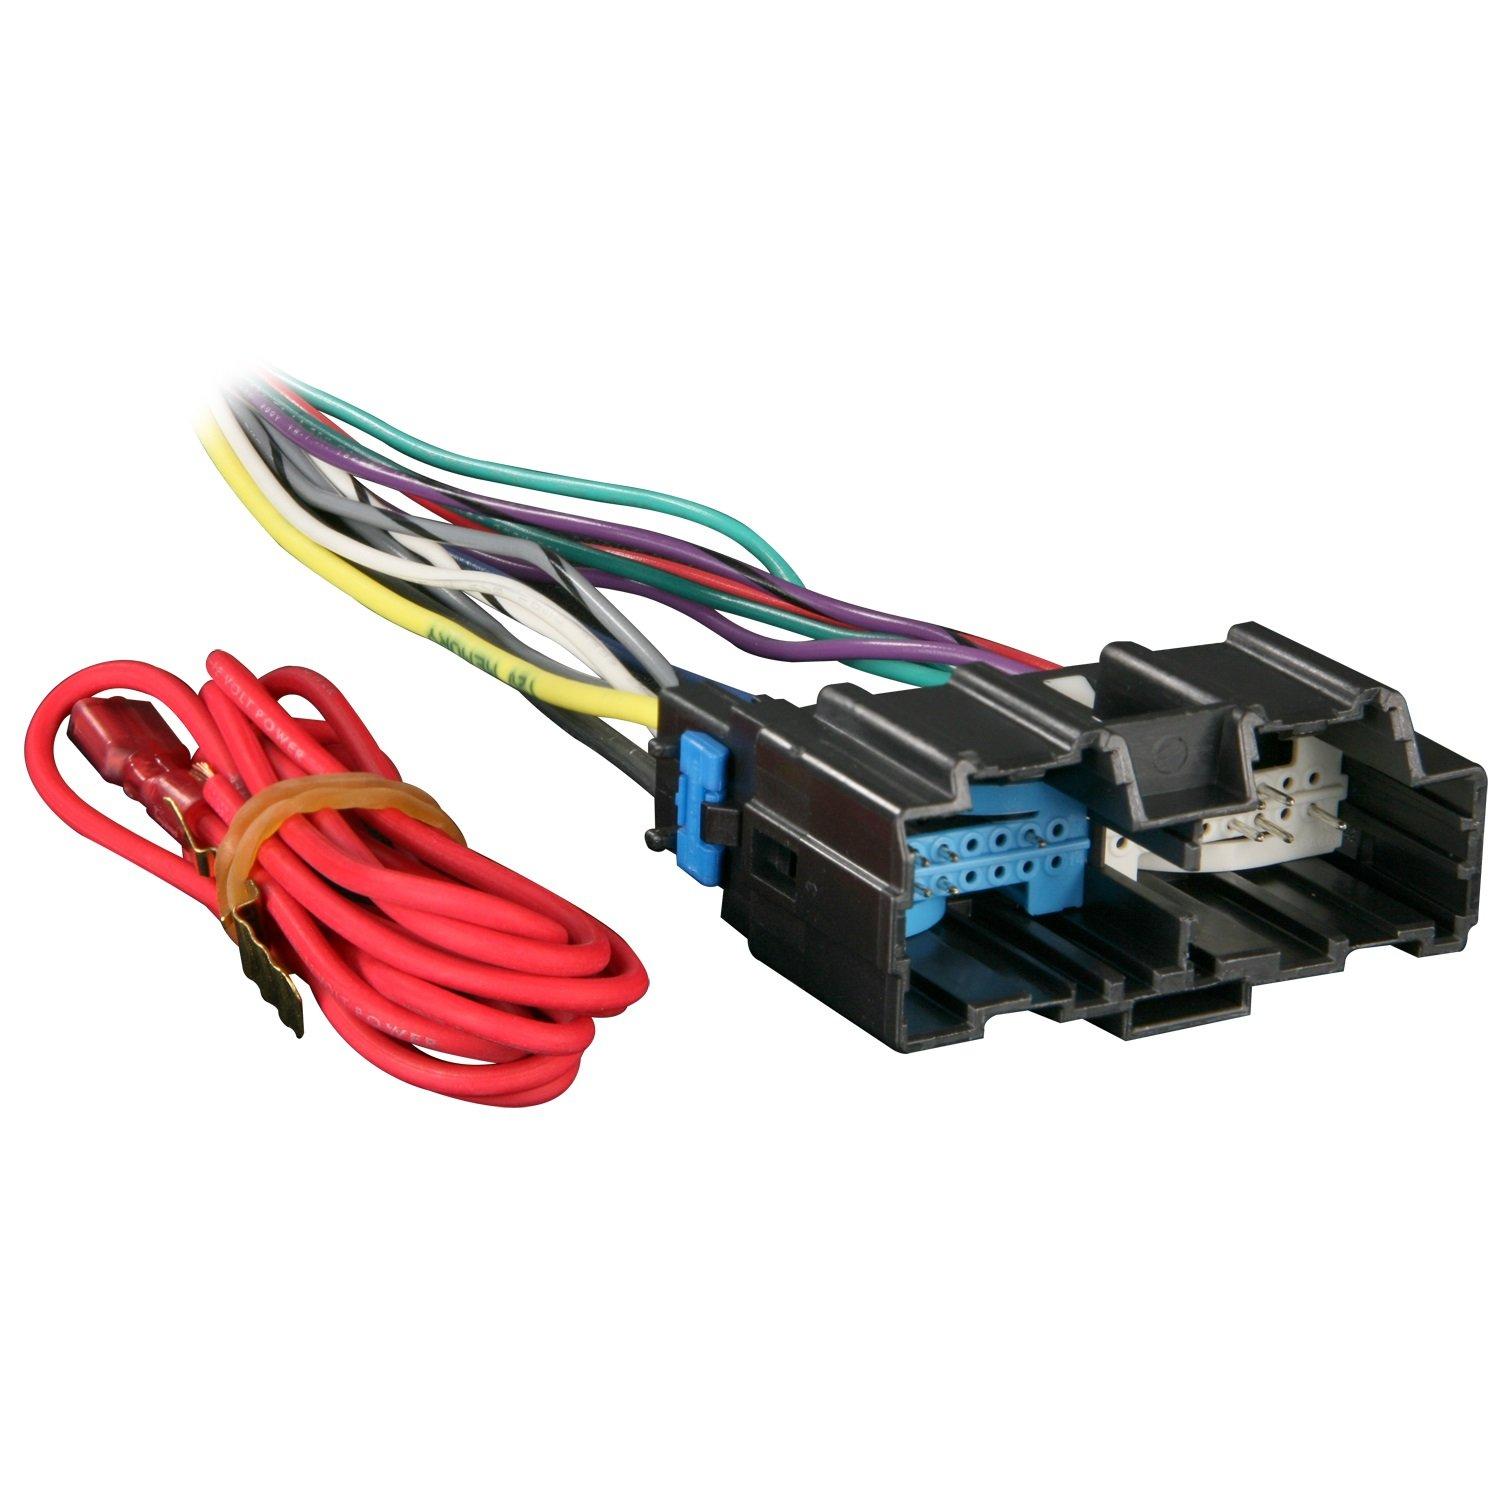 71ZzH dyg7L._SL1500_ amazon com metra 70 2105 radio wiring harness for impala monte wiring harness trade show at fashall.co